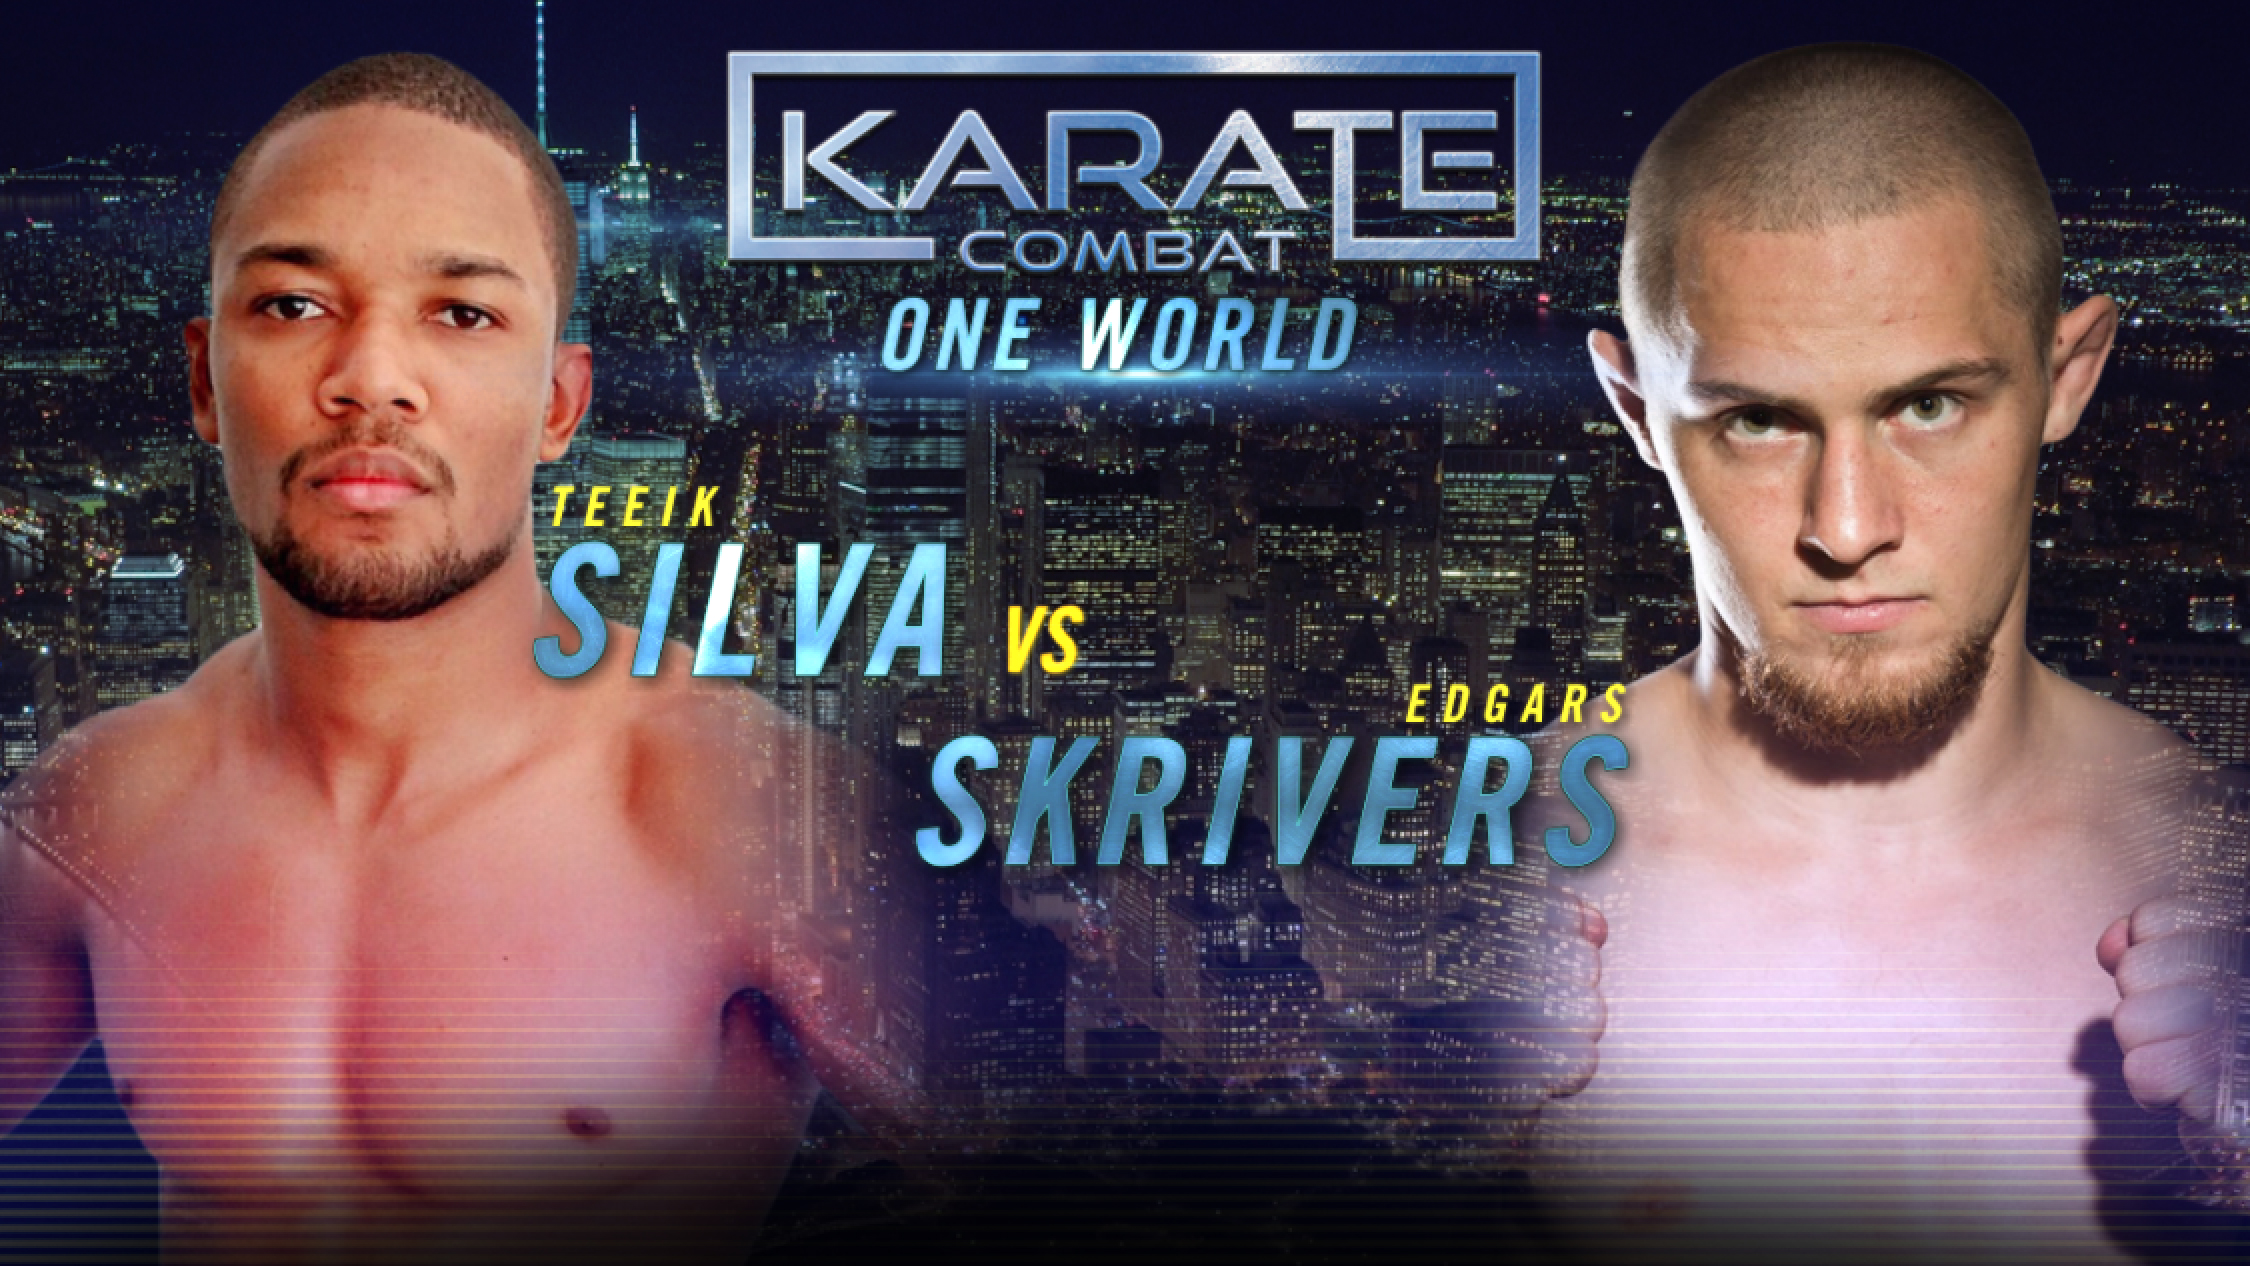 Edgars Skrivers vs. Teeik Silva